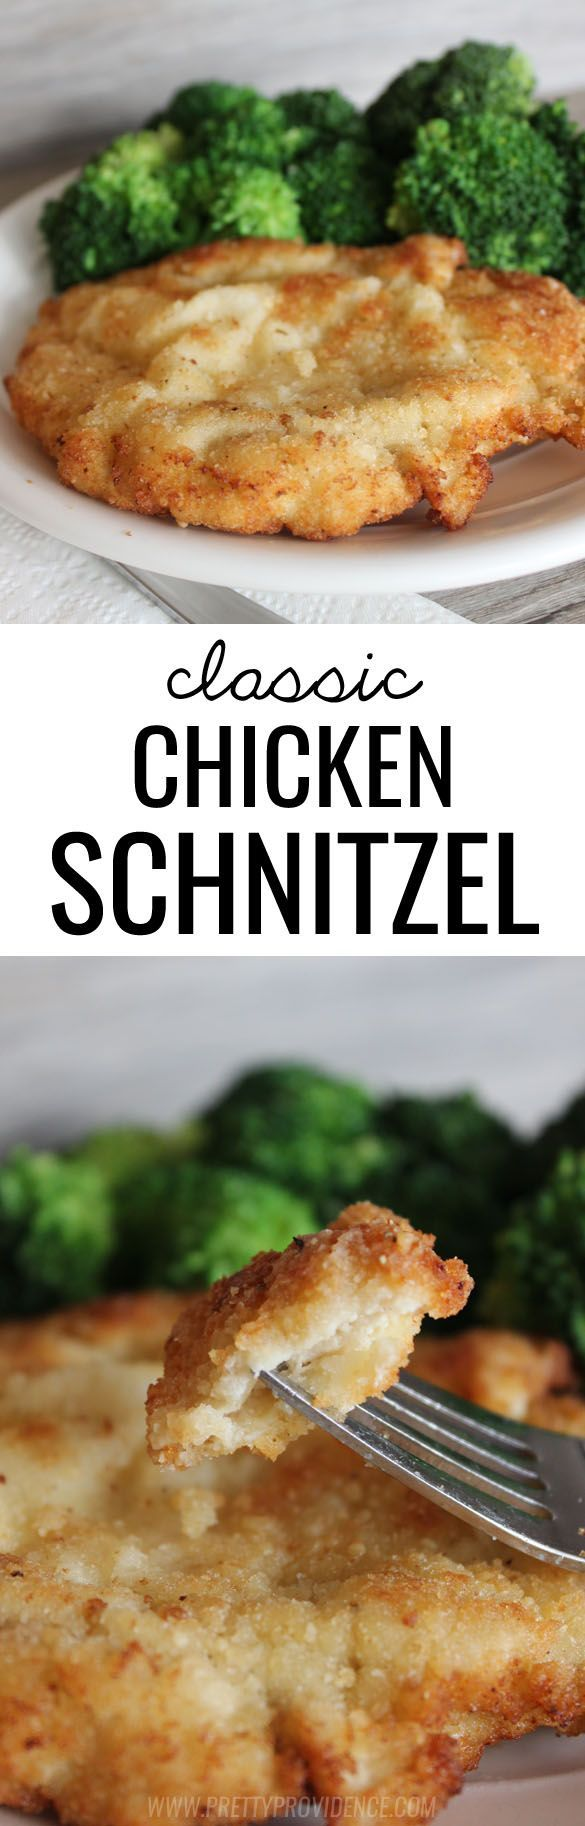 This classic chicken schnitzel cannot be beat! Such a yummy dinner option the…